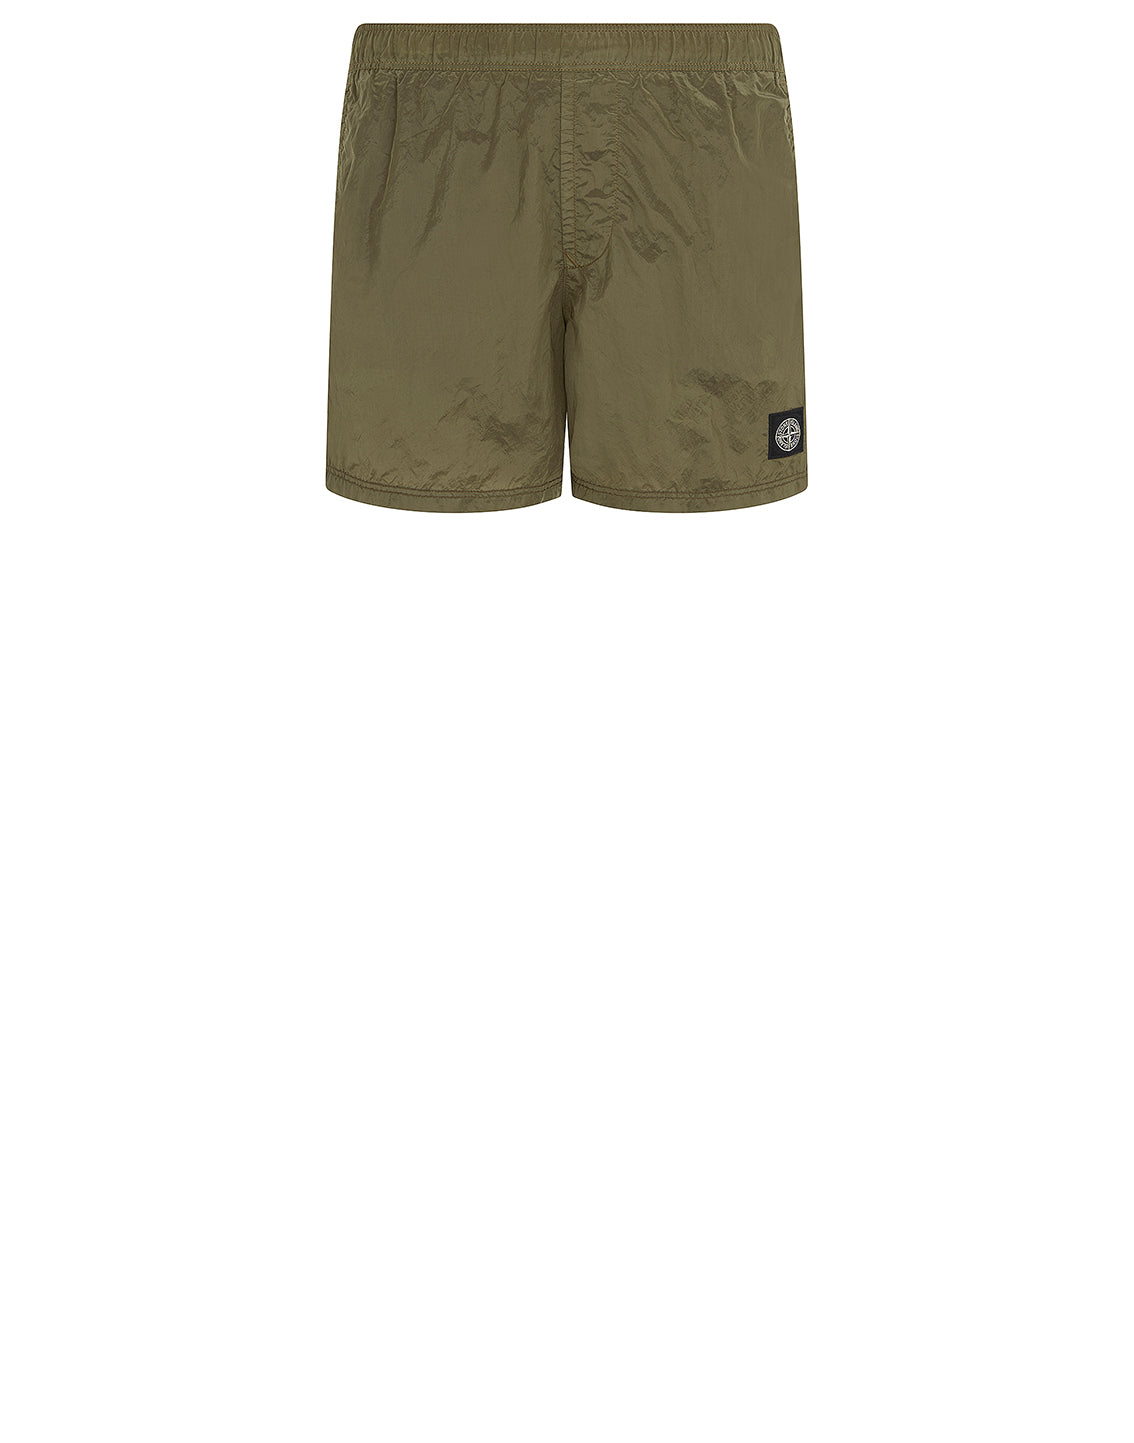 B0943 NYLON METAL Swim Shorts in Olive